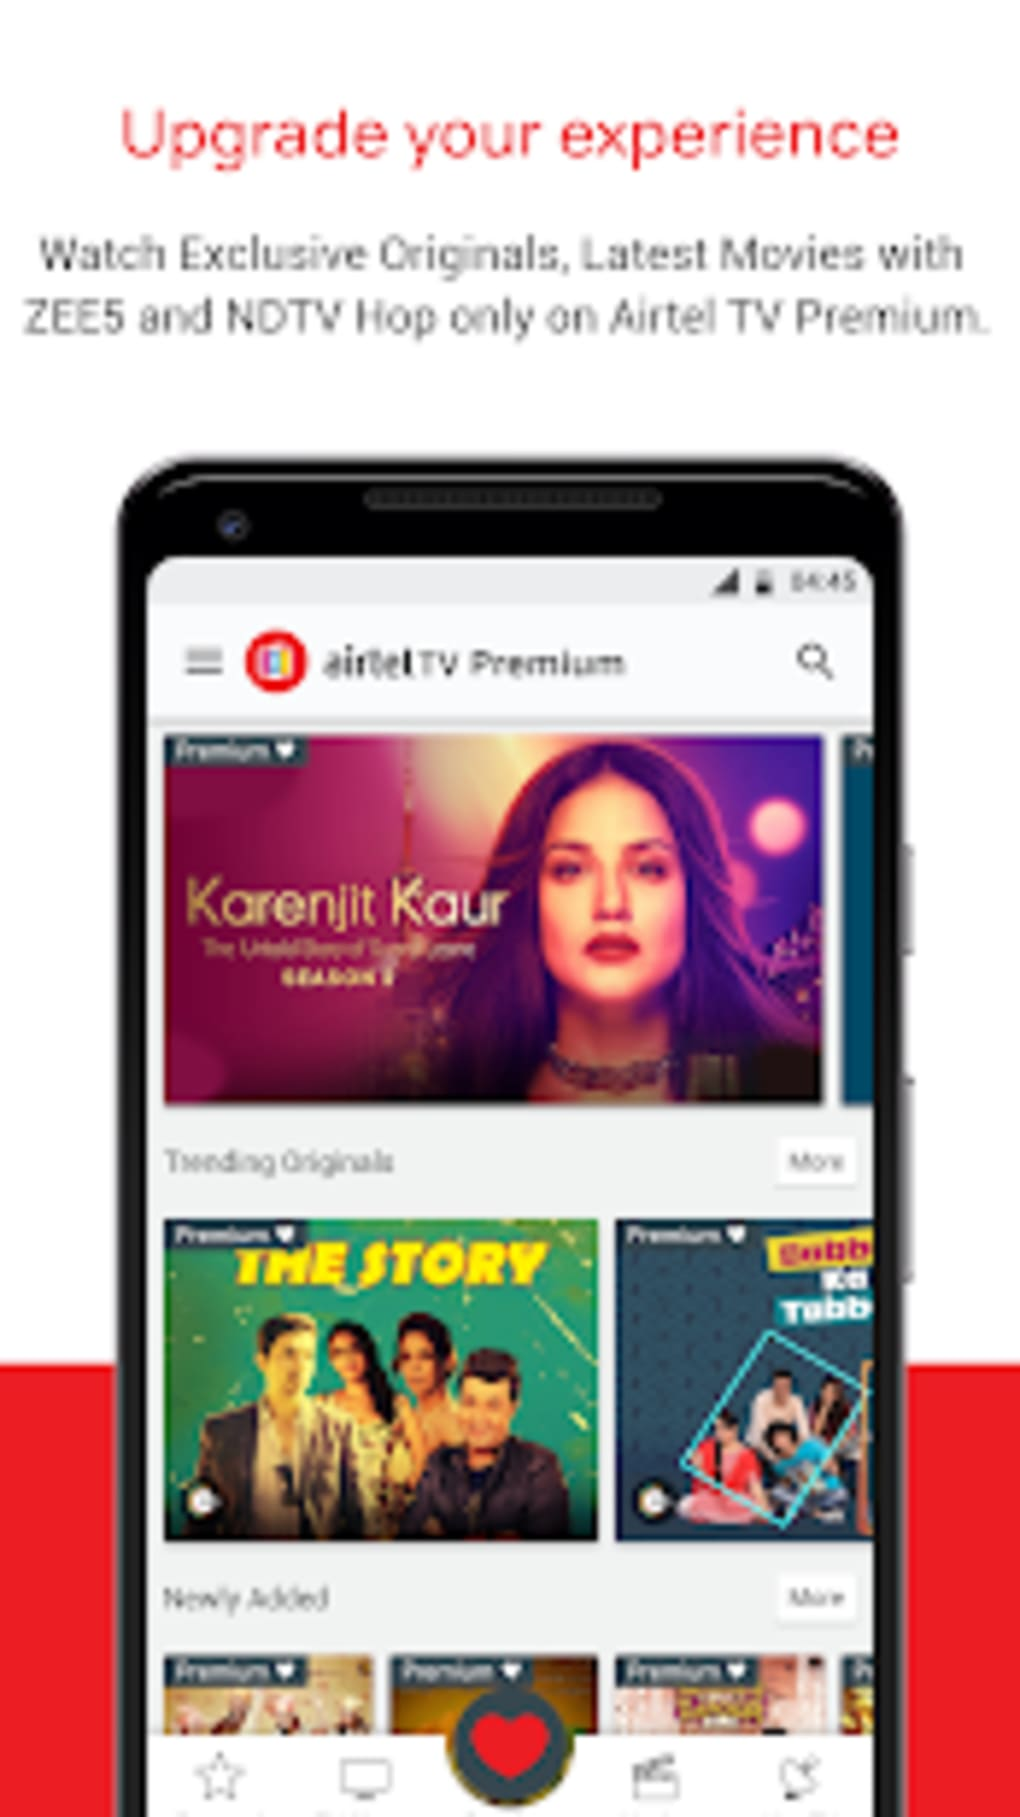 Airtel TV: Movies TV Shows Live Aus v Ind Kumbh for Android - Download